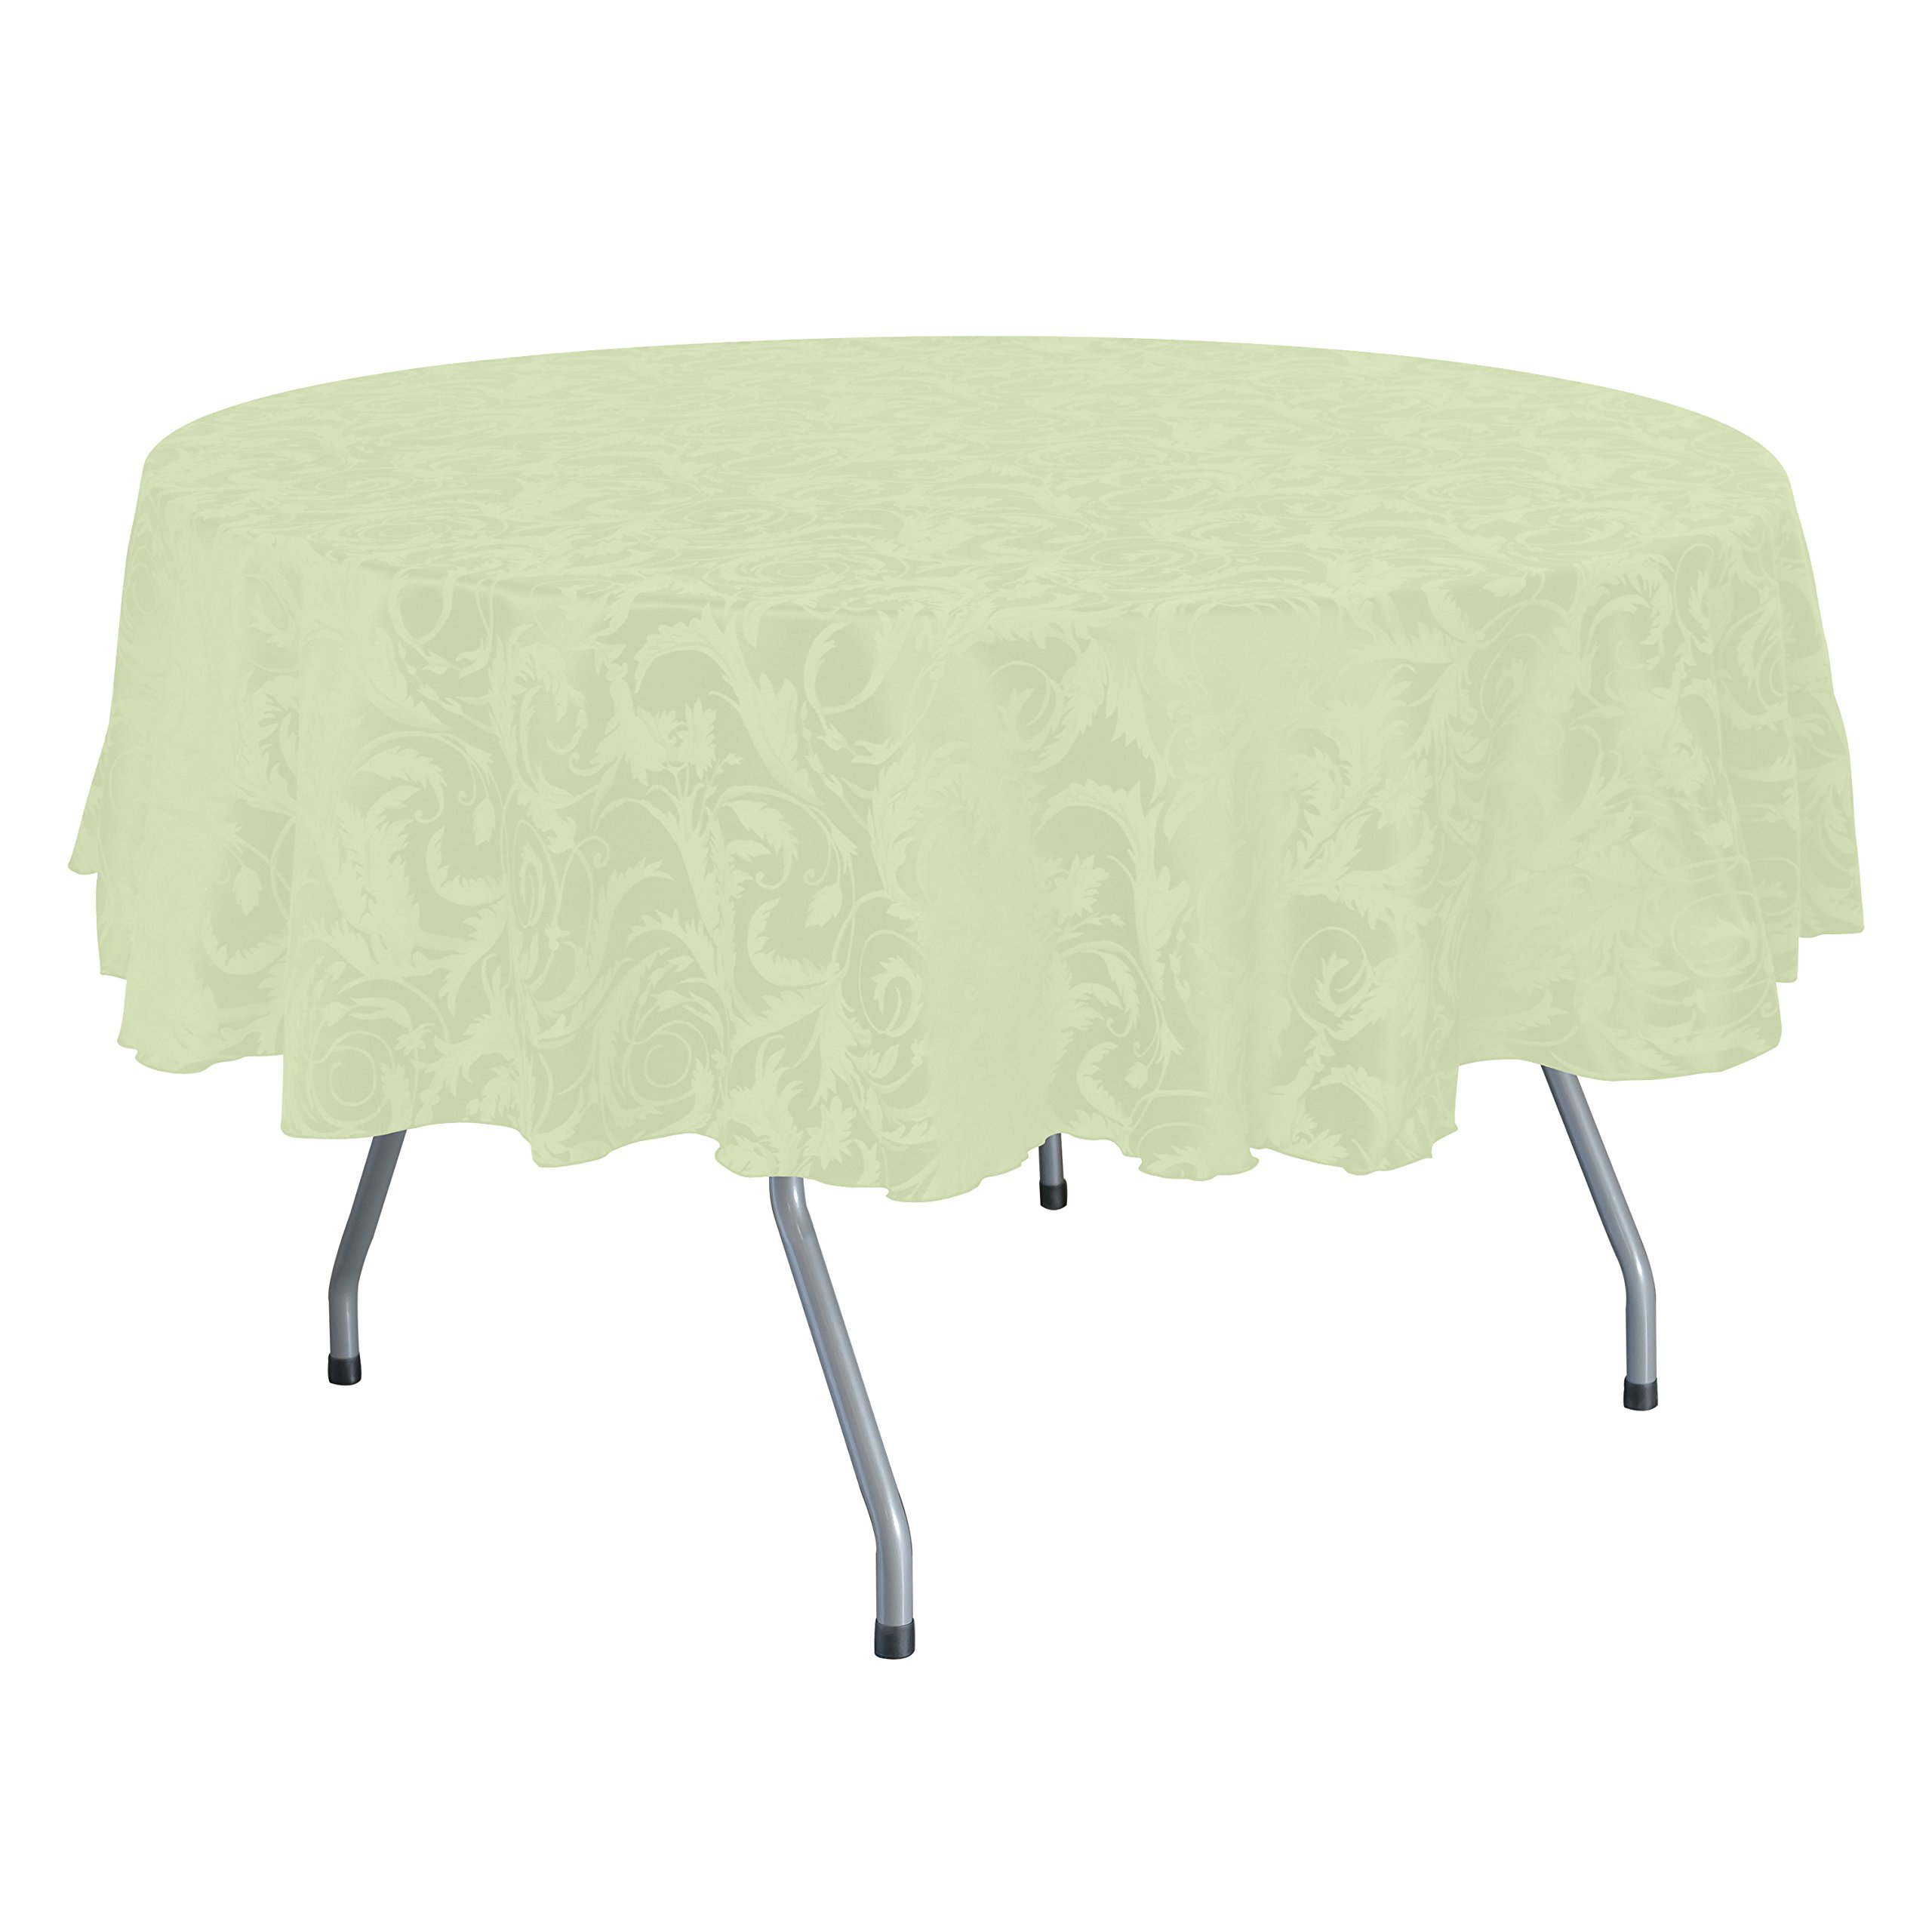 Ultimate Textile (5 Pack) Damask Melrose 72 x 120 Inch Oval Tablecloth - Home Dining Collection - Floral Leaf Scroll Jacquard Design, Ivory